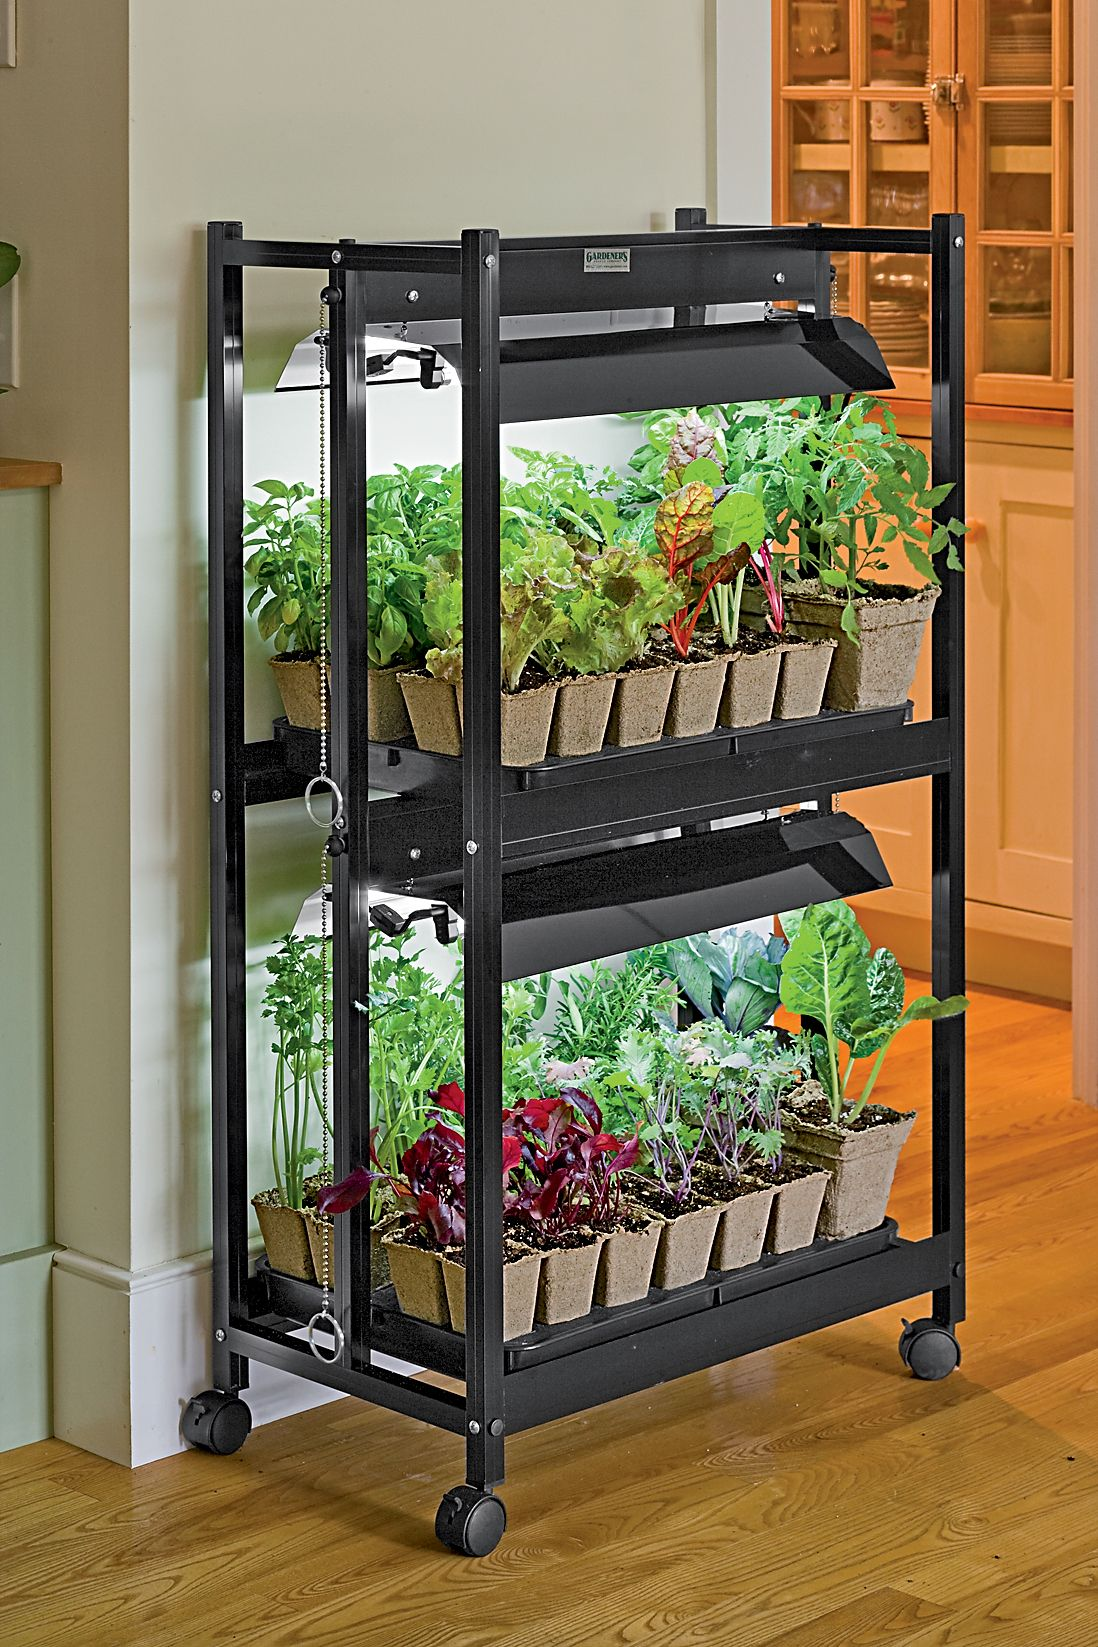 Indoor Kitchen Garden Herbs And Spices Get Started Growing 5 Easy Small Vegetable Ideas To Try Tips Starting Gardens From Seeds Indoors